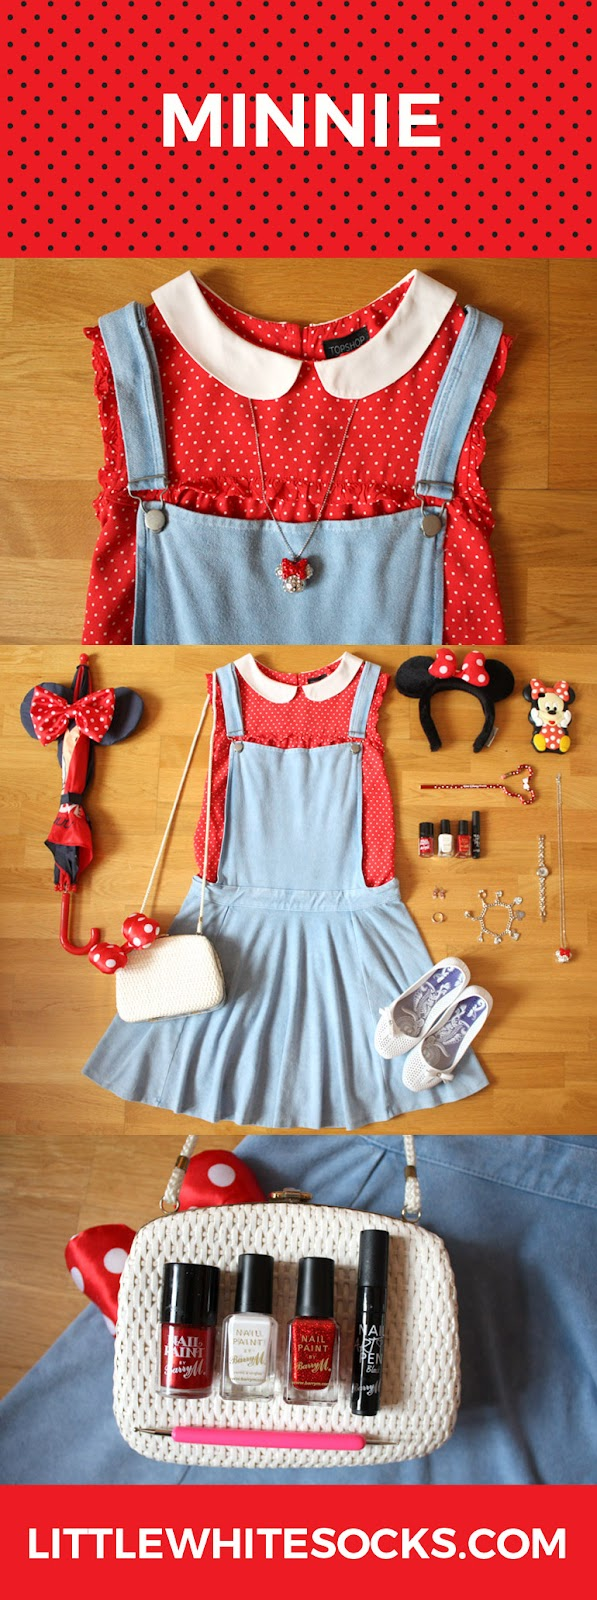 minnie mouse inspired fashion outfit